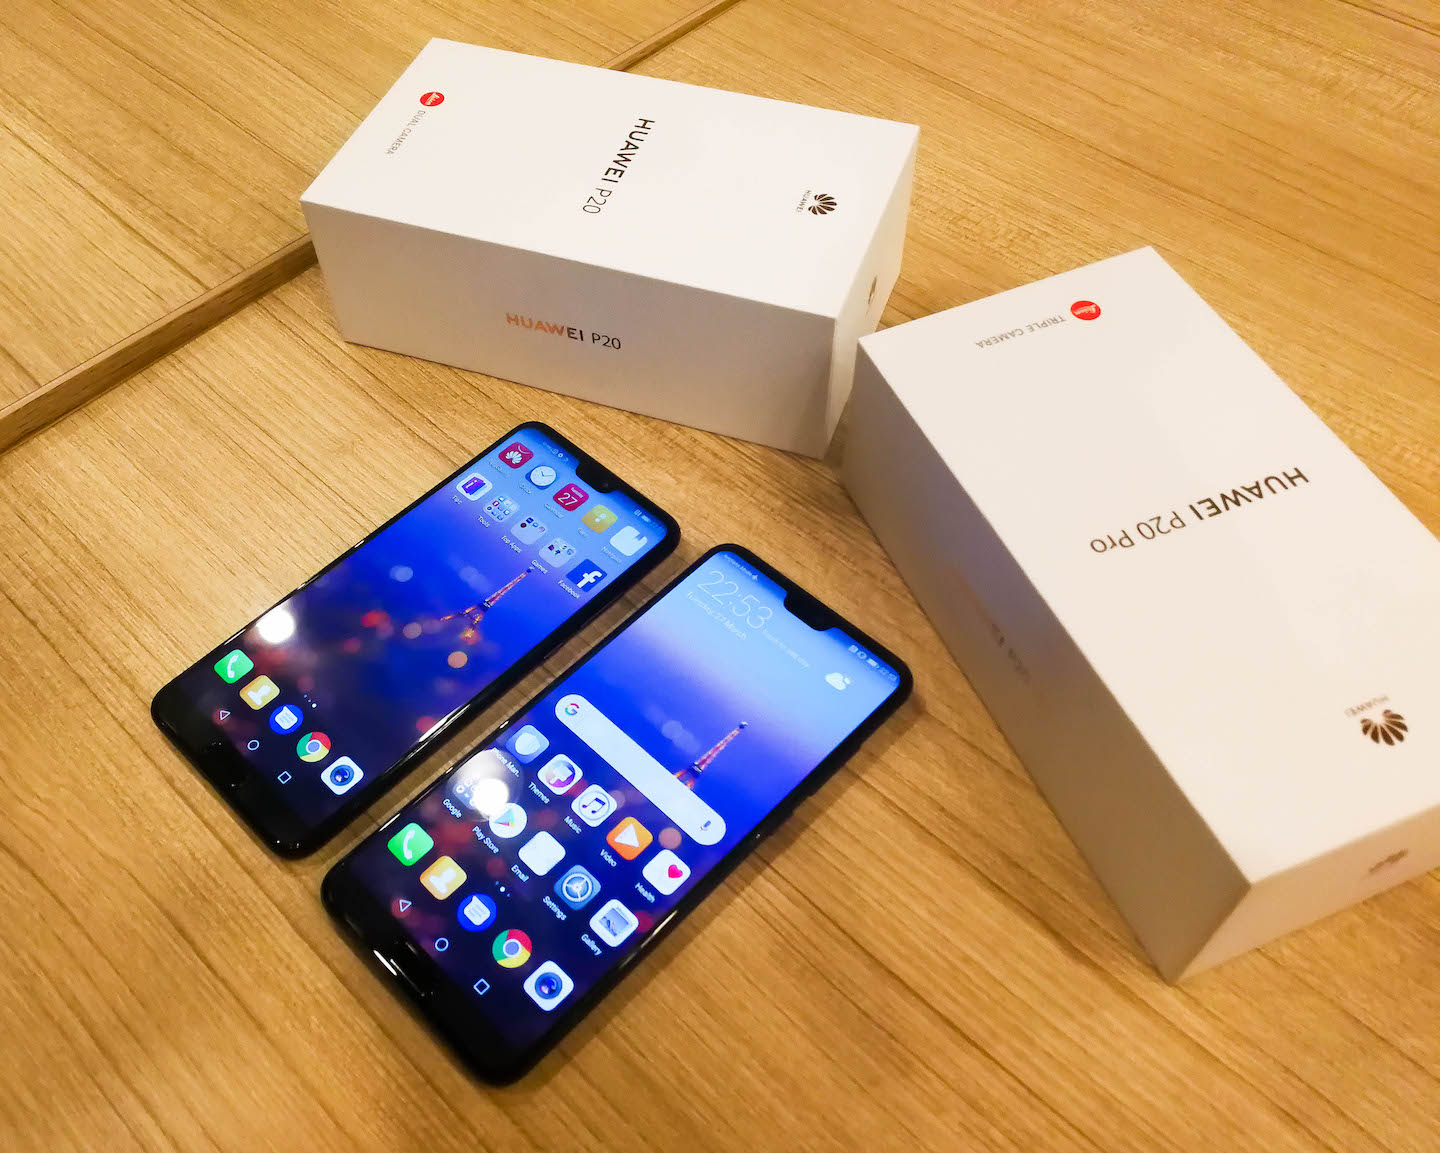 HUAWEI P20 and HUAWEI P20 Pro Is Officially Out!